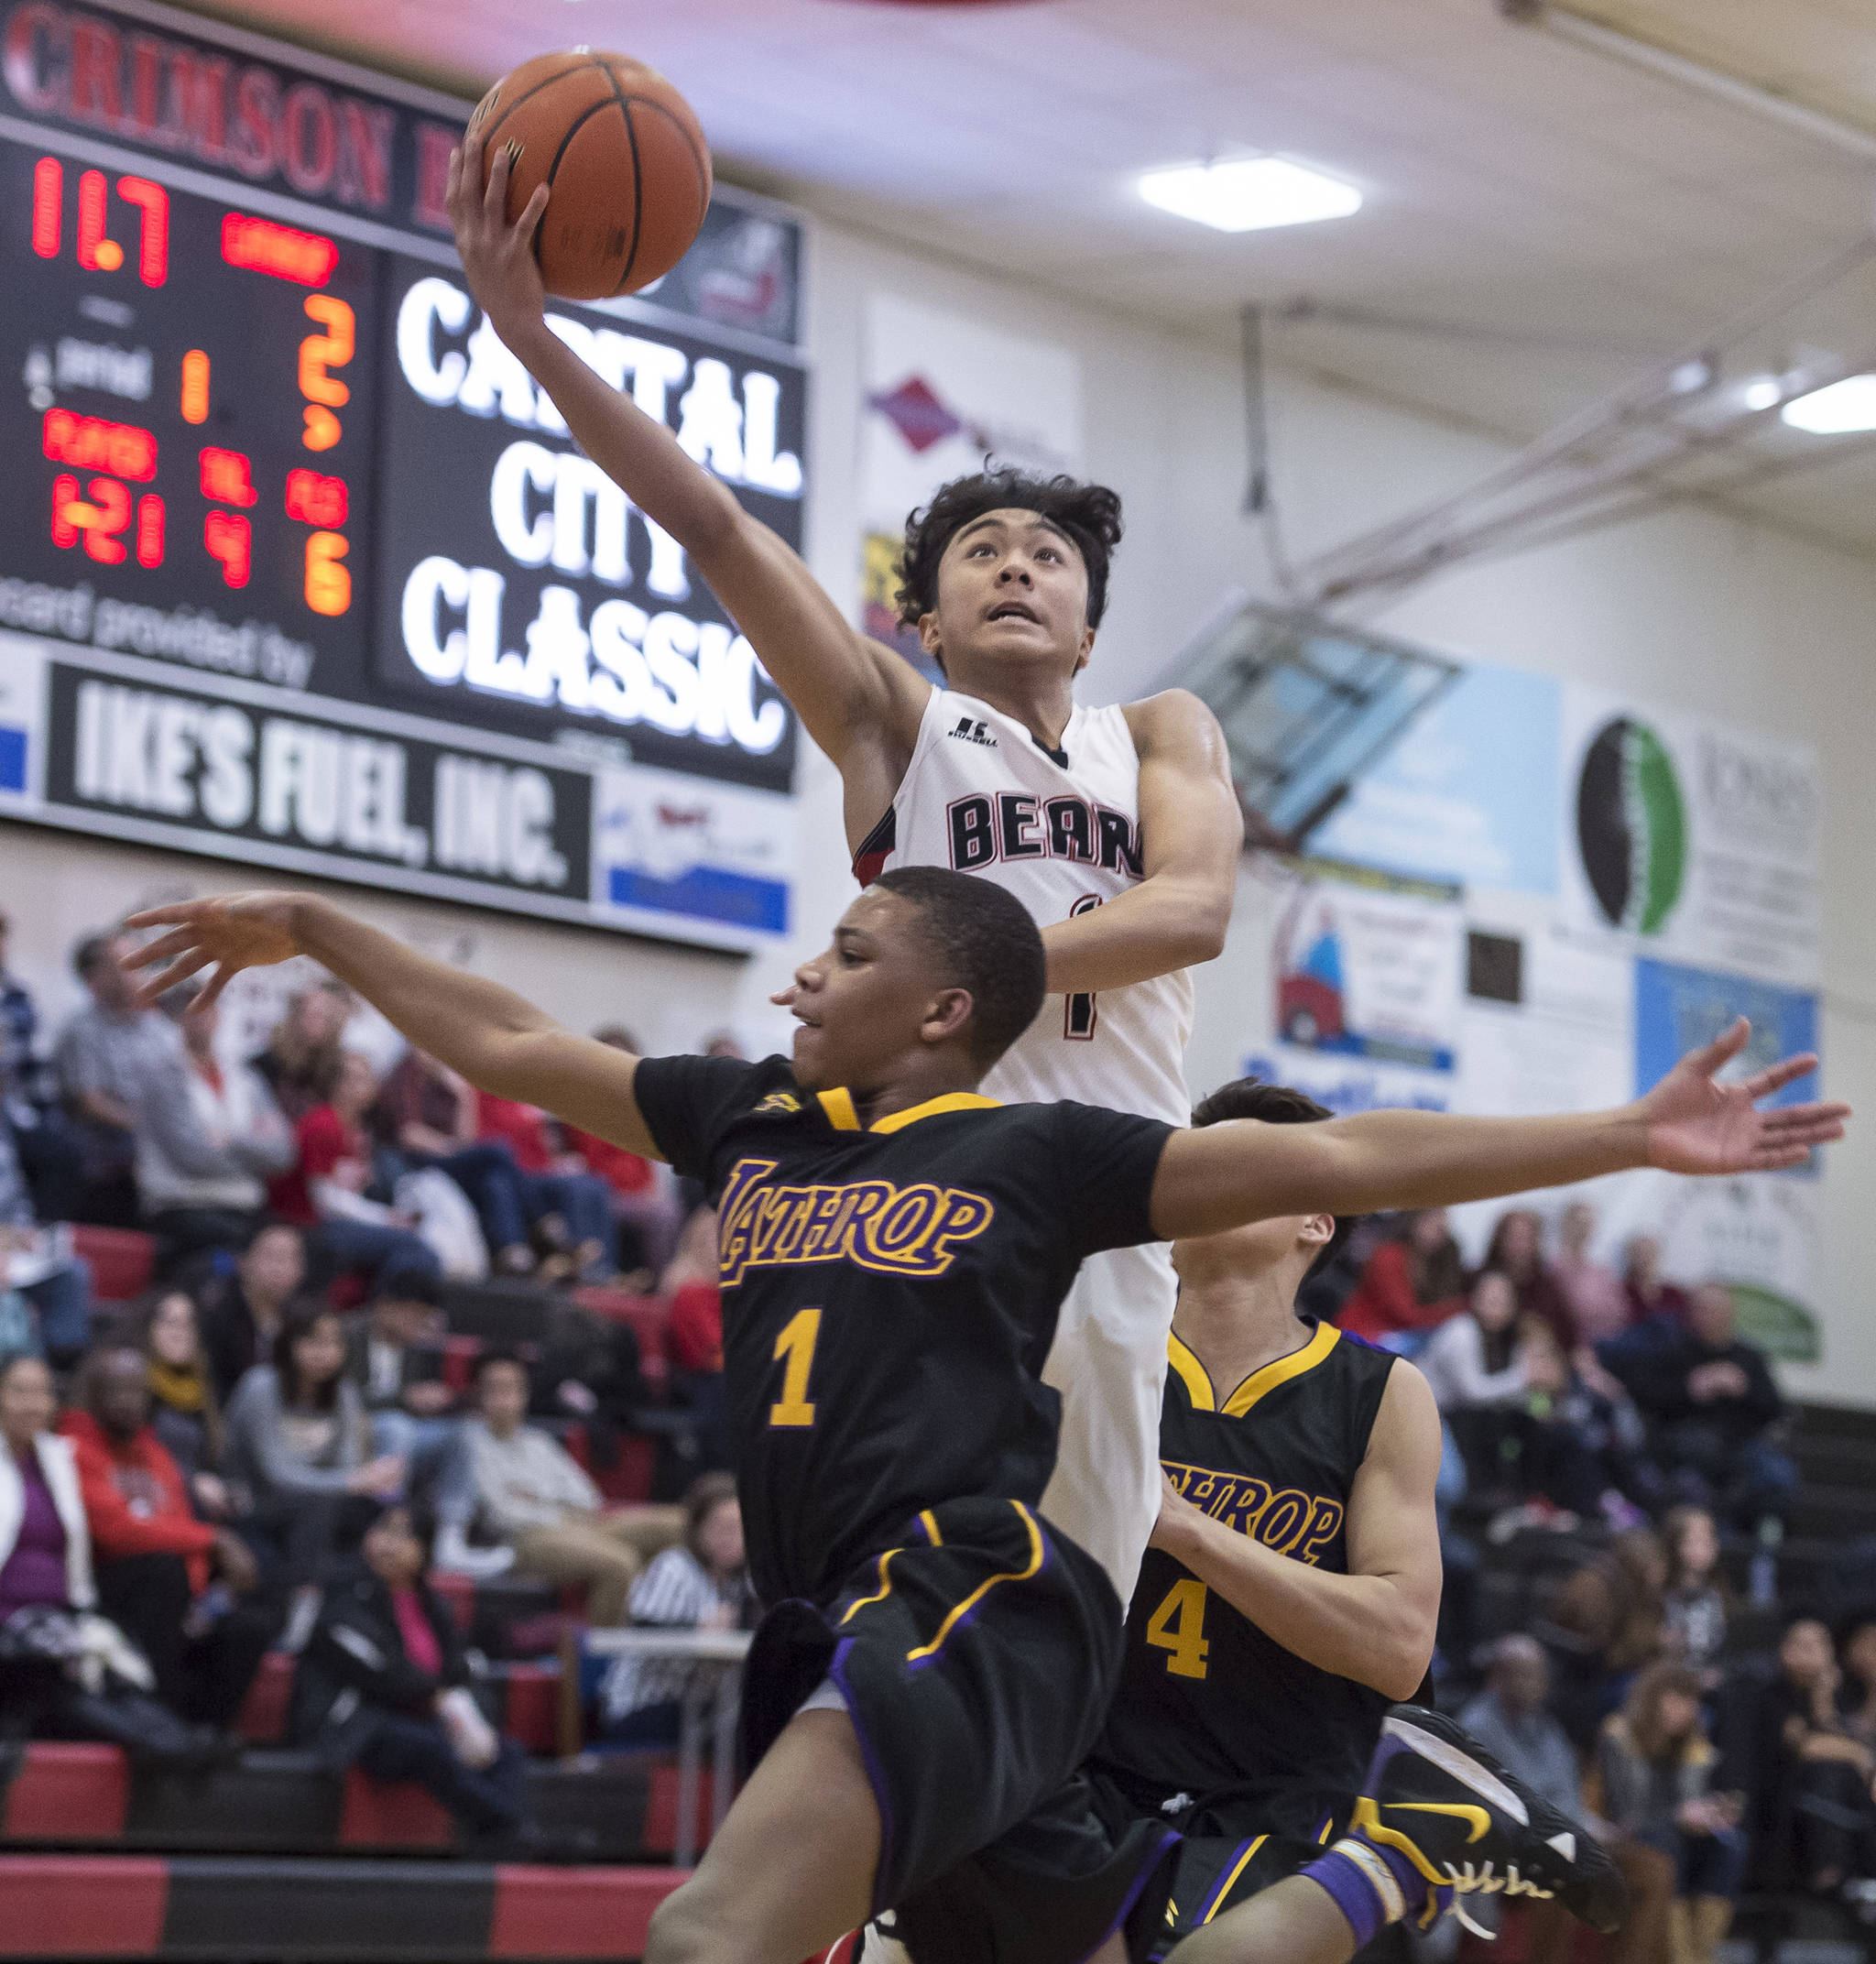 Juneau-Douglas' Israel Yadao lays the ball up over Lathrop's Jakobee Johnson at the Princess Cruises Capital City Classic at Juneau-Douglas High School on Thursday, Dec. 27, 2018. Juneau-Douglas won 69-45. (Michael Penn | Juneau Empire)